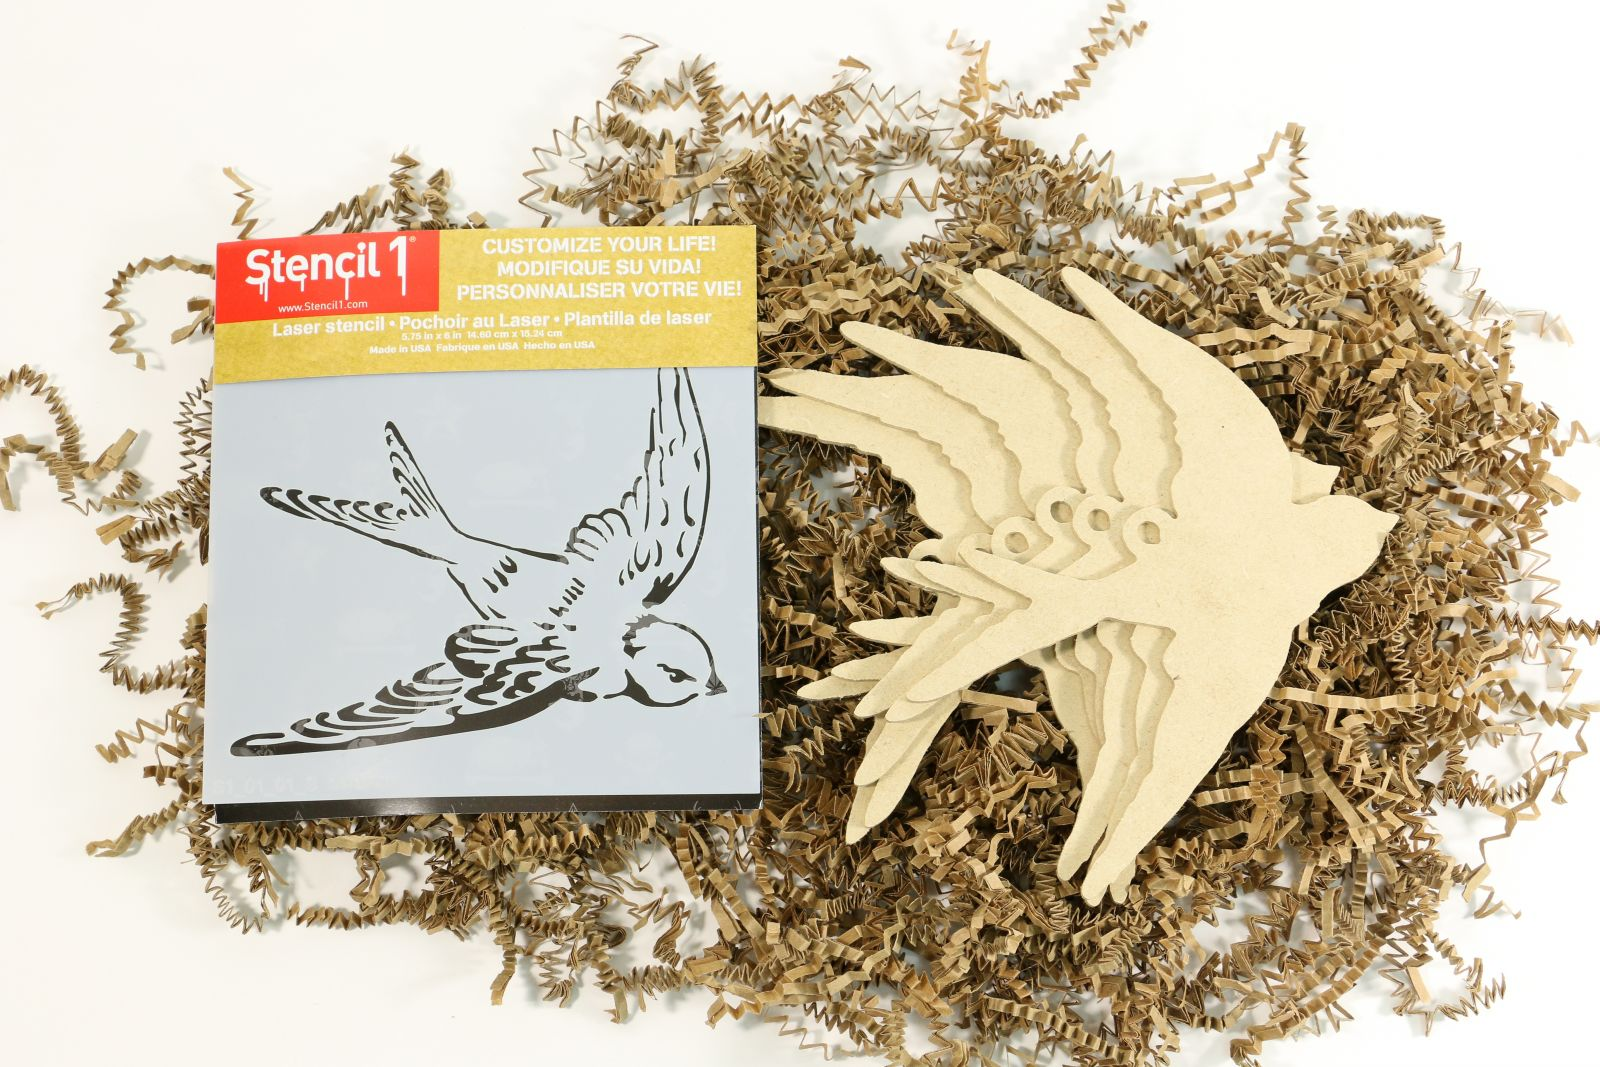 Stenciled Ornament Kit from Stencil1